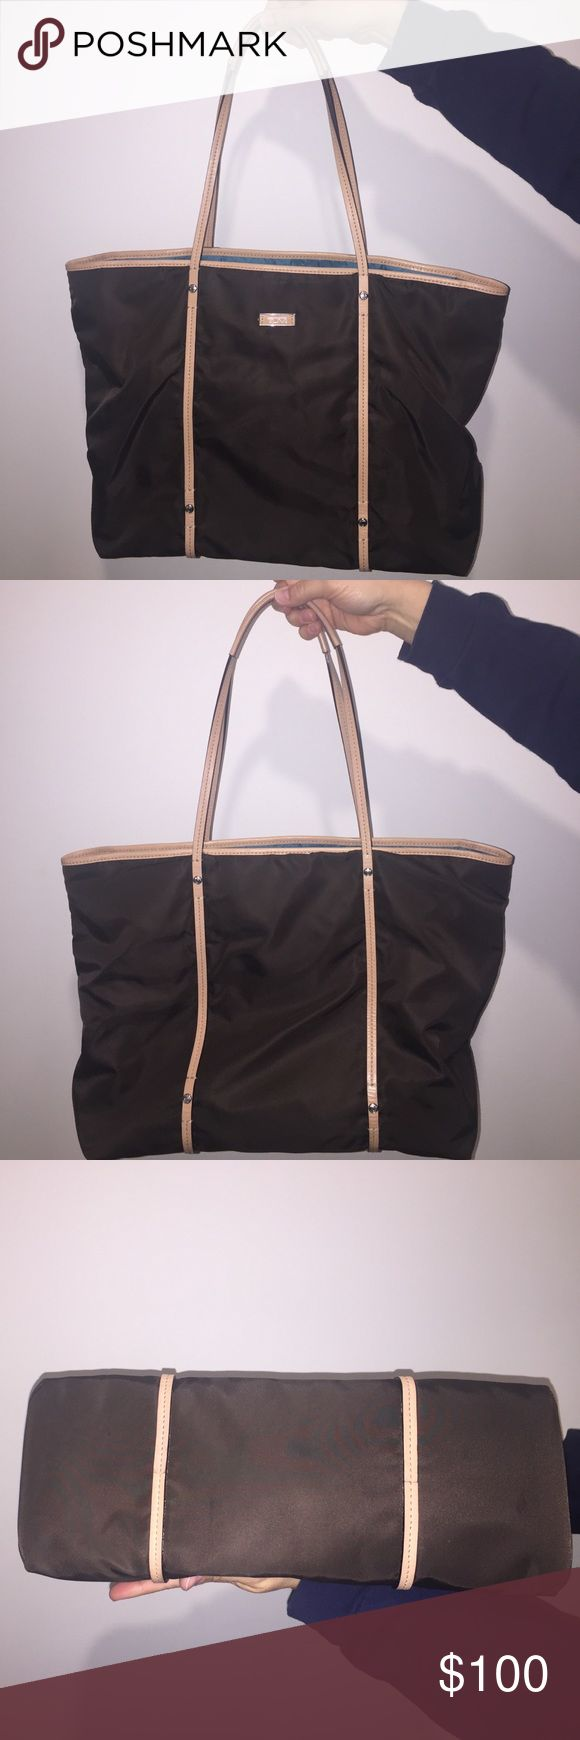 Tumi nylon tote Very good condition.  Barely used.  No marks or stains.  Non-smoking household. Tumi Bags Totes